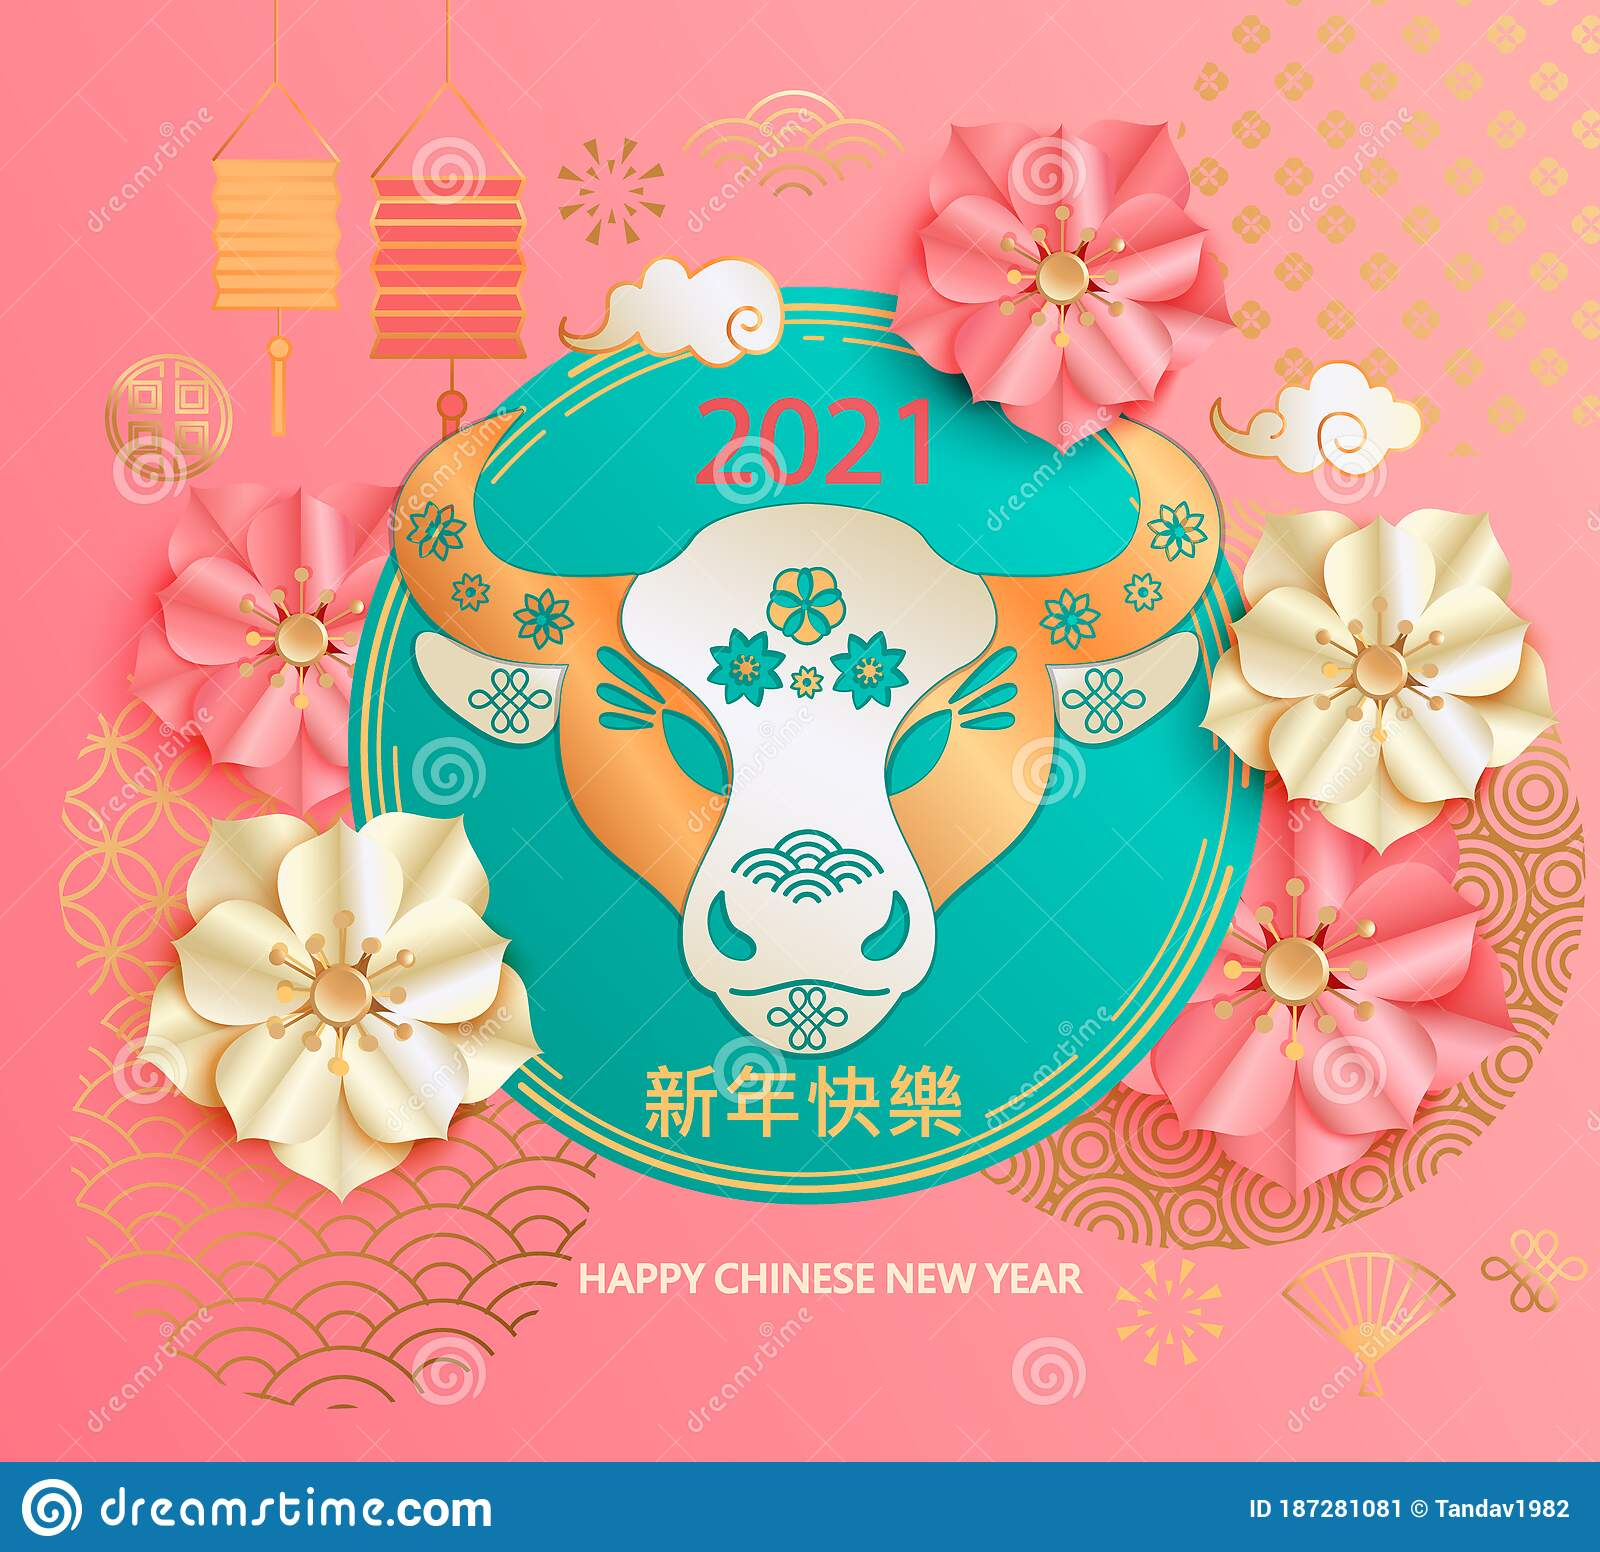 2021 Chinese New Year Greeting Card With Flowers Stock Vector Illustration Of Culture 2021 187281081